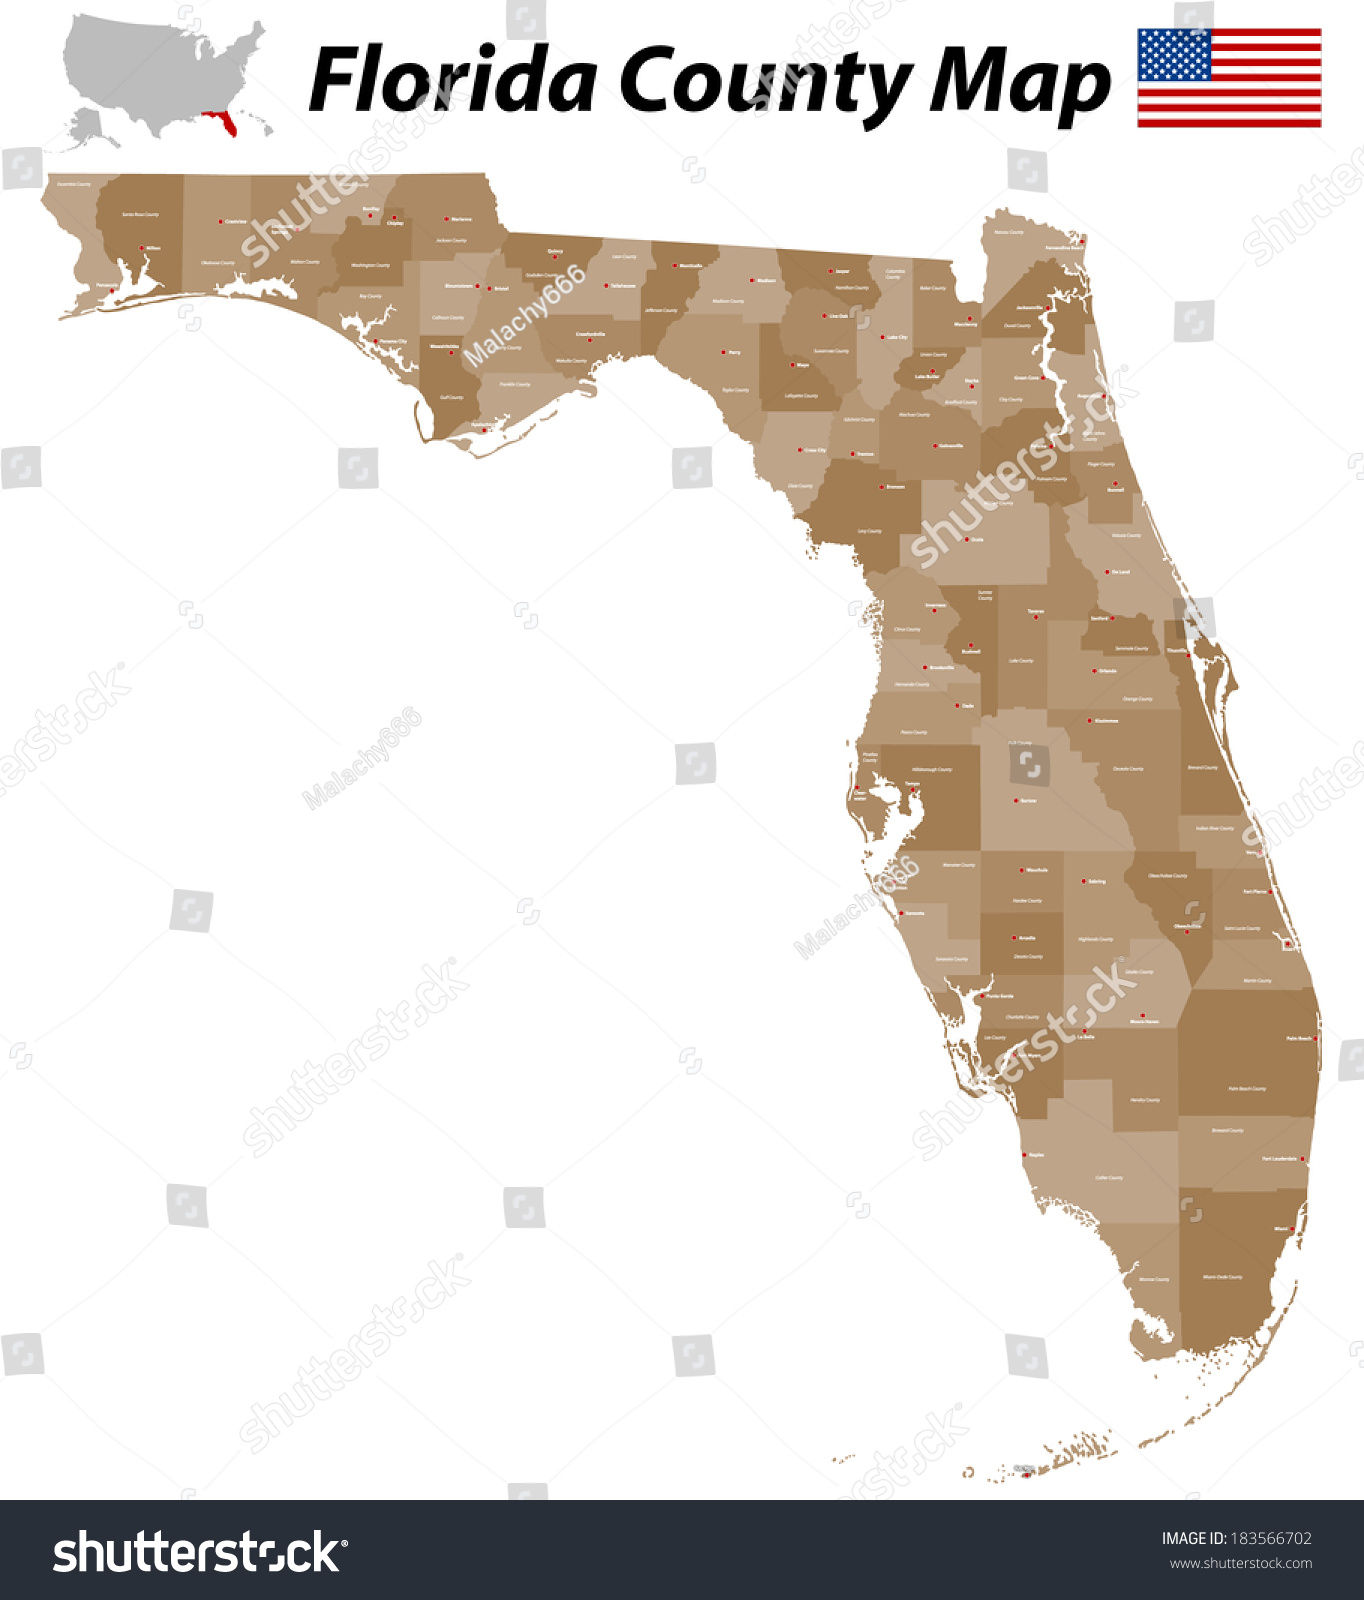 Detailed Map Florida All Counties Main Stock Vector - Map of florida counties and cities